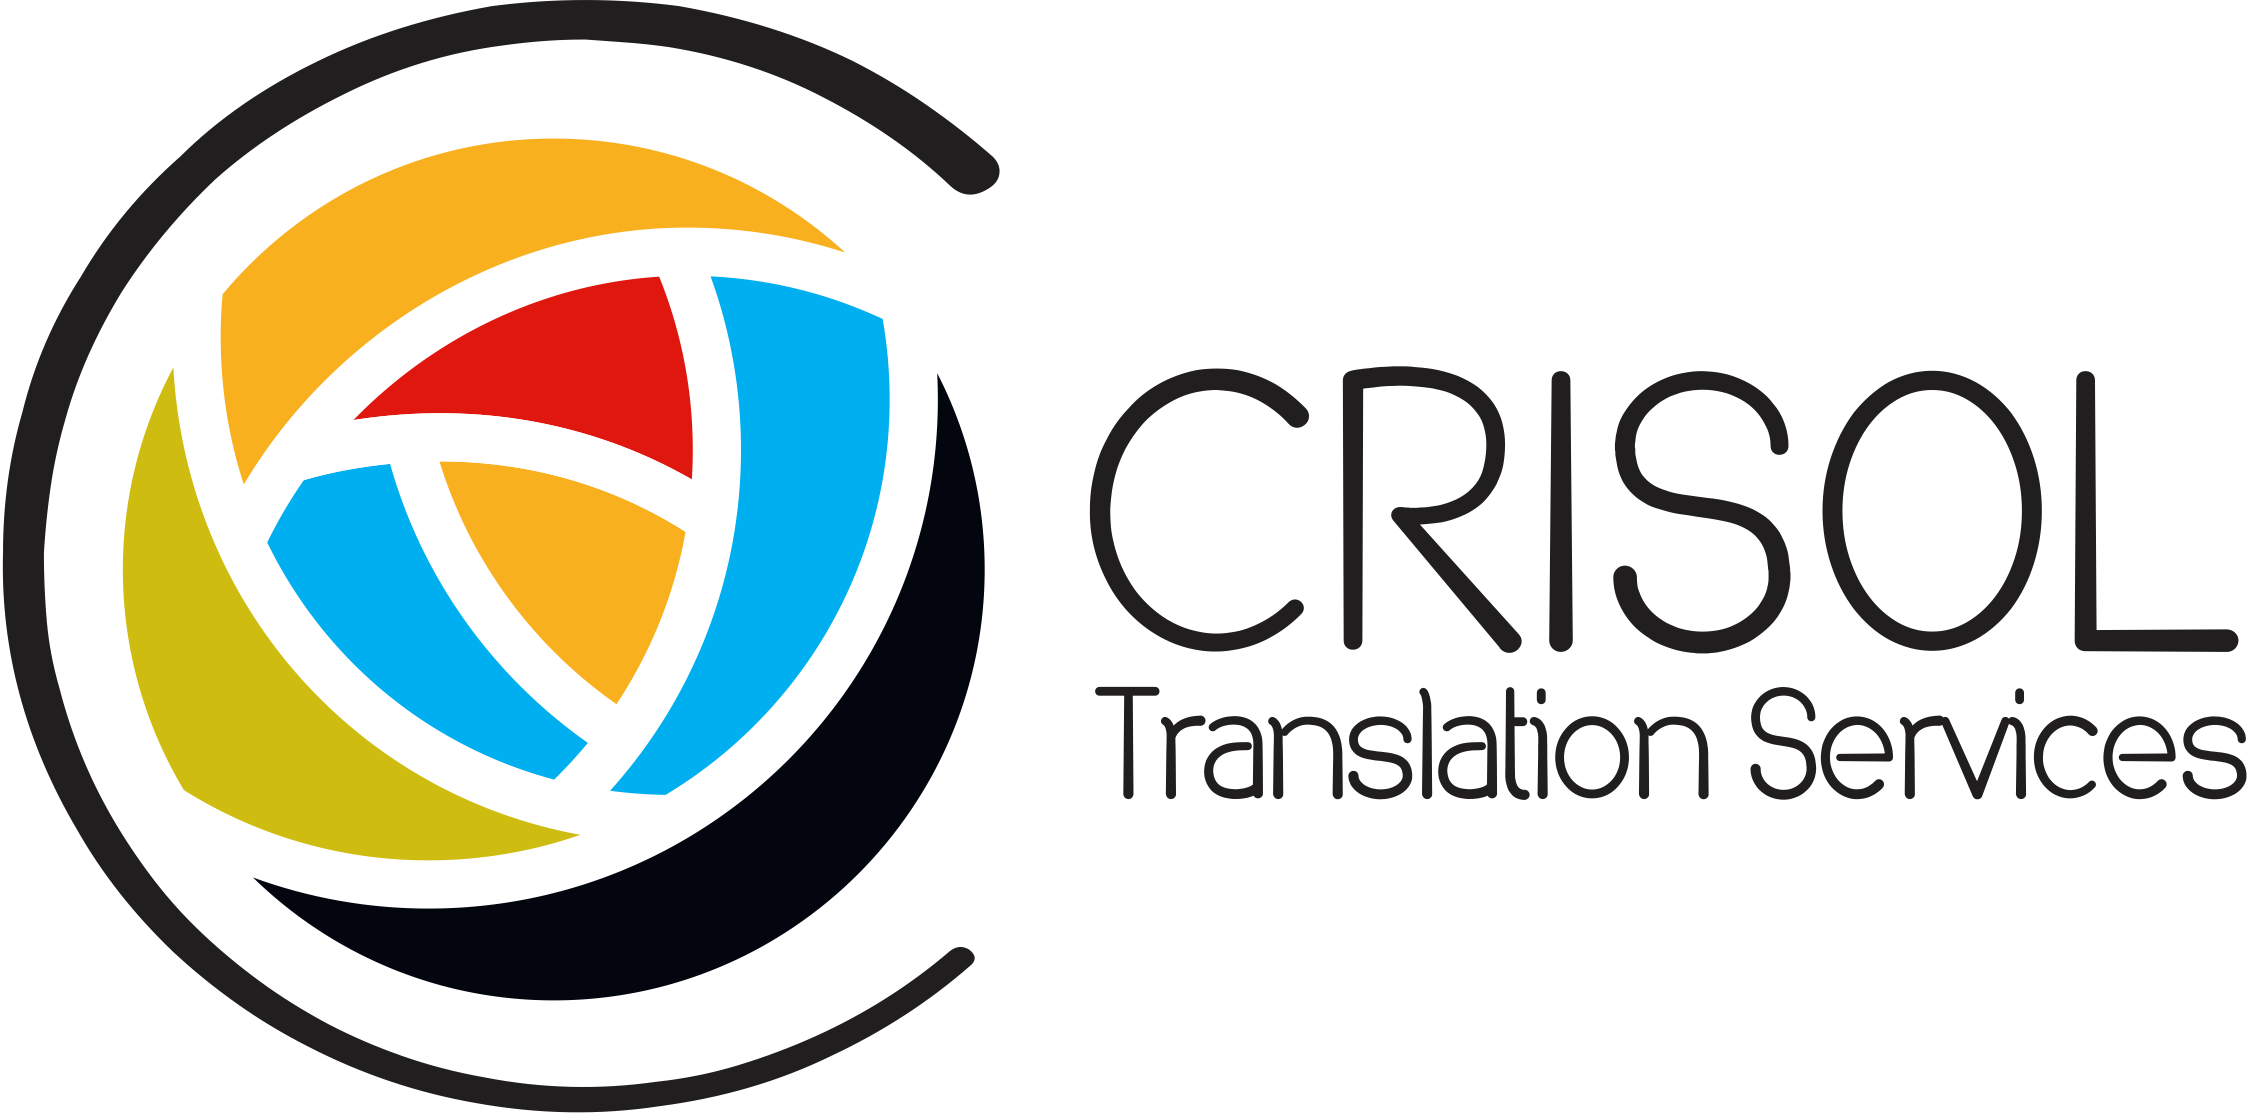 Crisol Translation Services